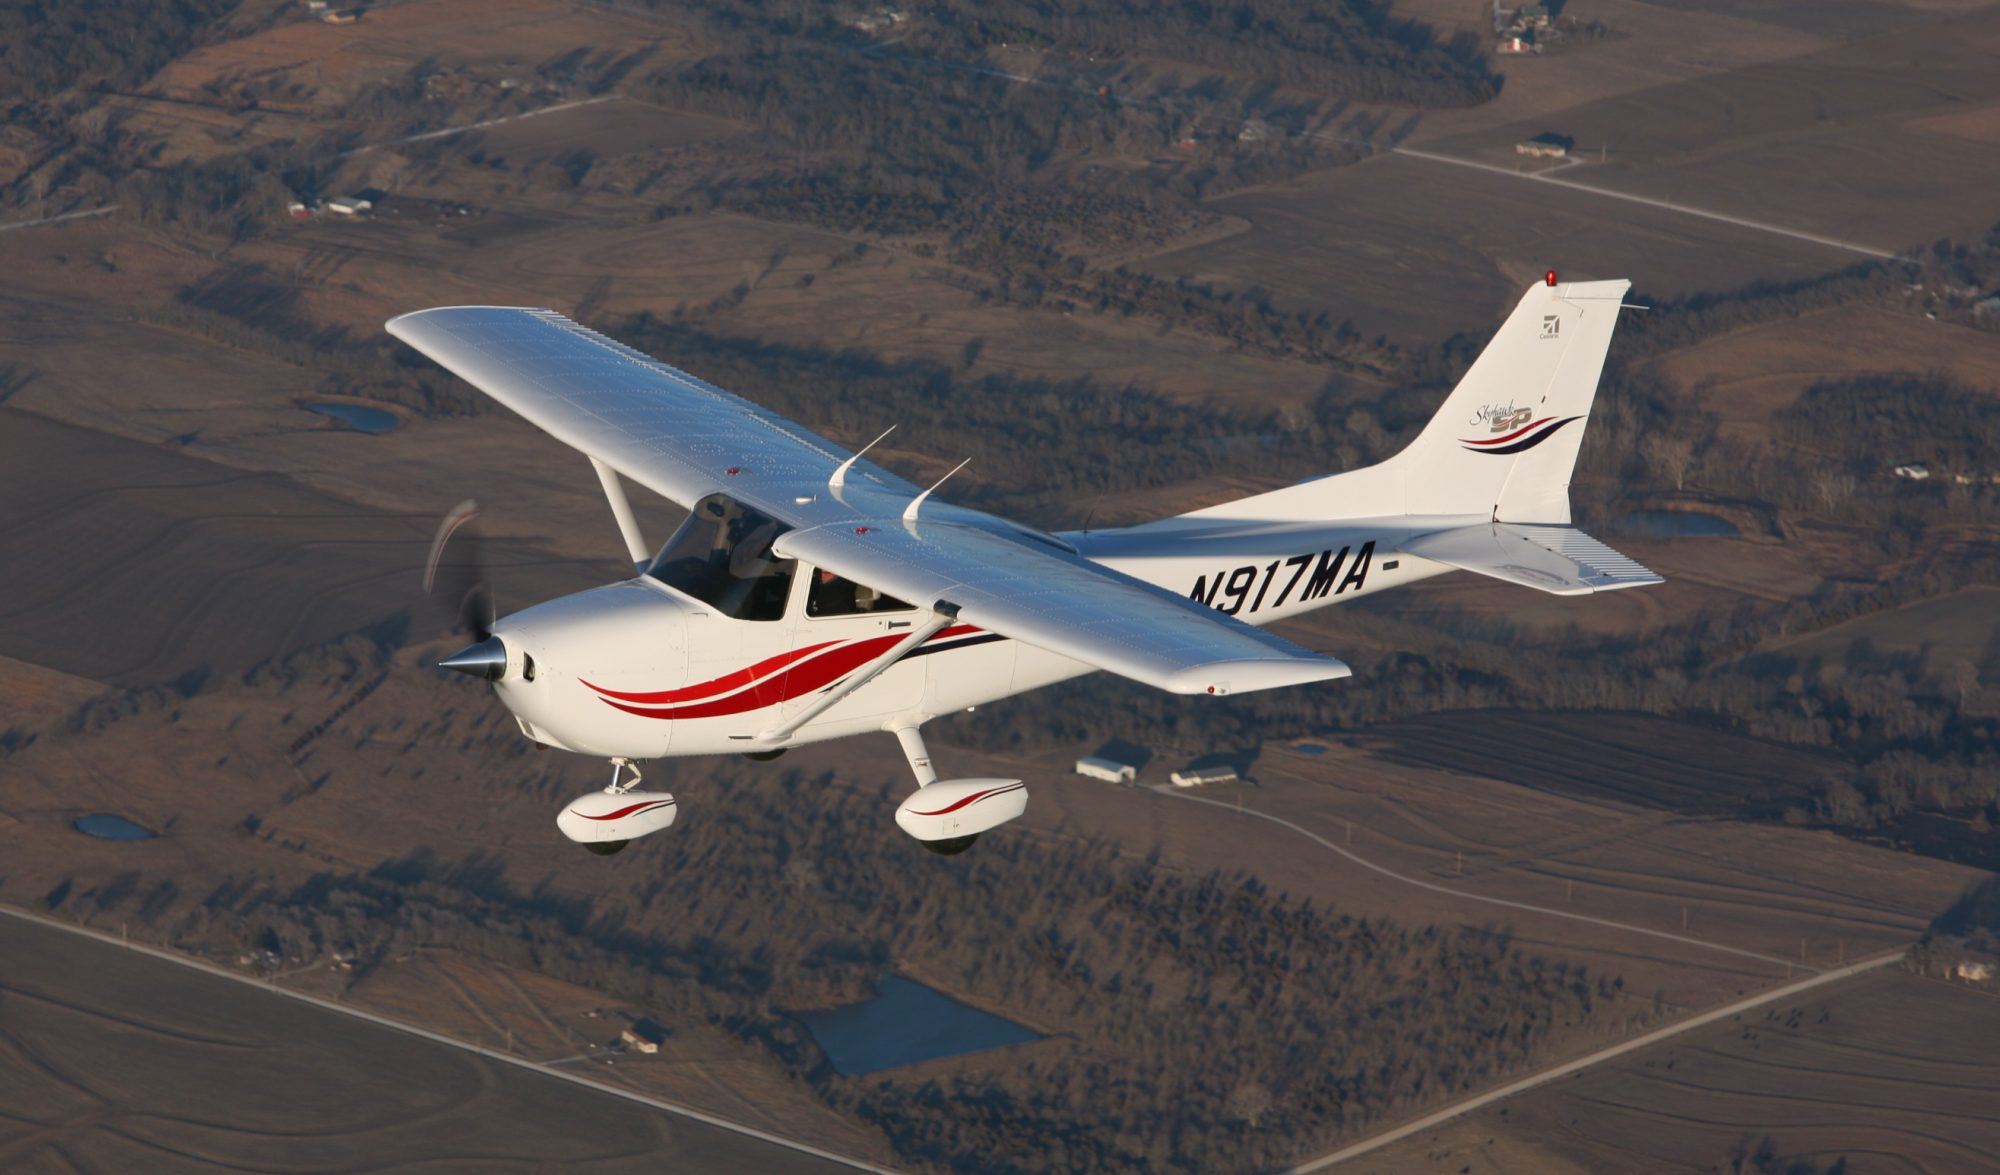 K-State Flying Club